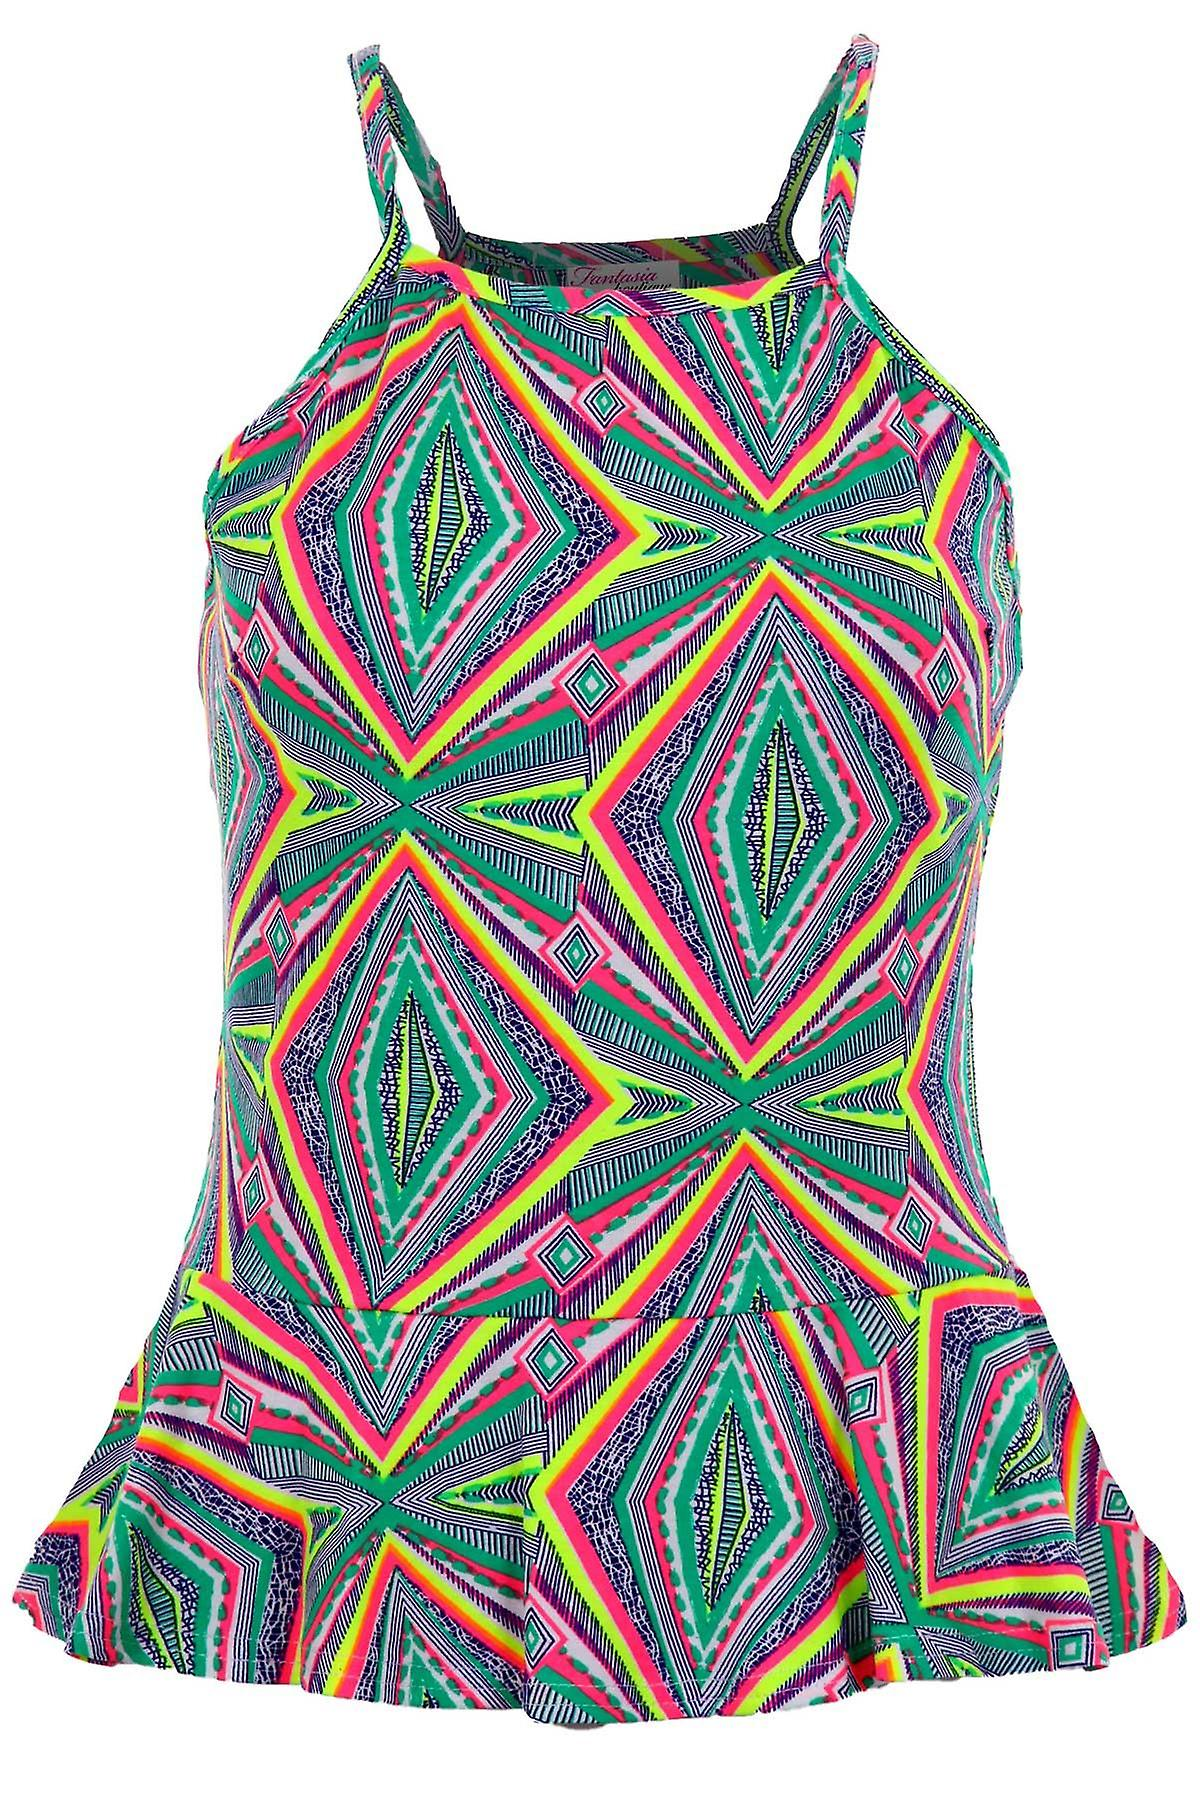 Ladies Sleeveless Strappy Cami Neon Aztec Print Women's Frill Peplum Vest Top